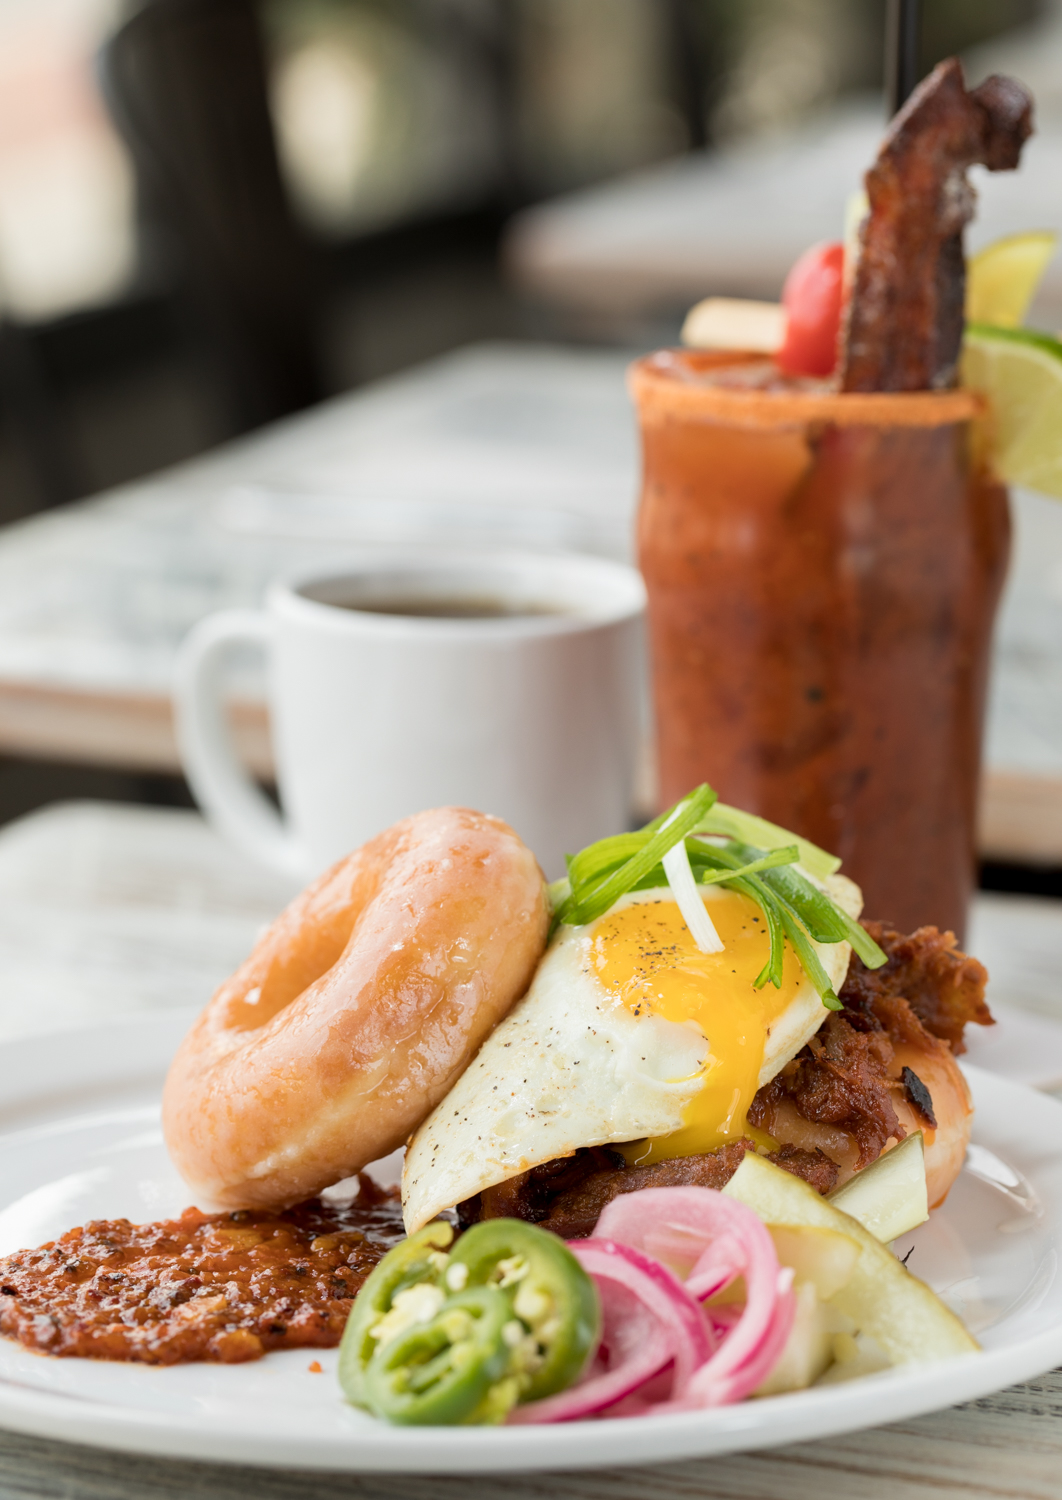 Smoked Pork & Donuts: Eli's BBQ smoked pork, a Krispy Kreme, and a fried egg with the house Bloody Mary to drink / Image: Marlene Rounds // Published: 1.6.19